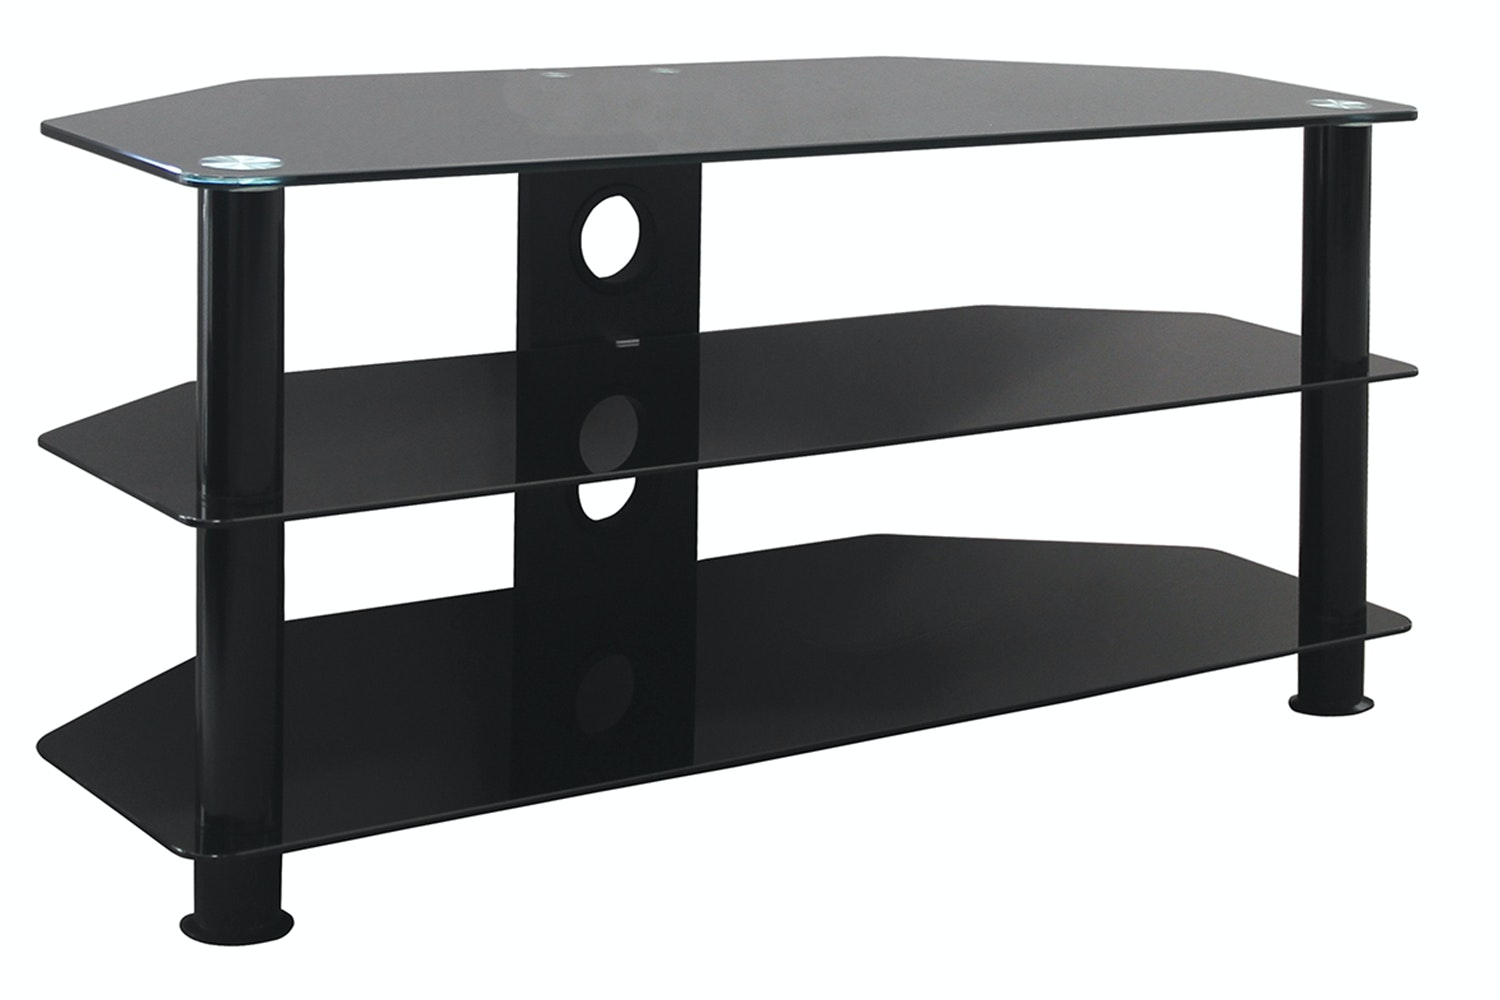 Arawhata 3 Shelf 32 - 42 TV Table Black by Pudney and Lee